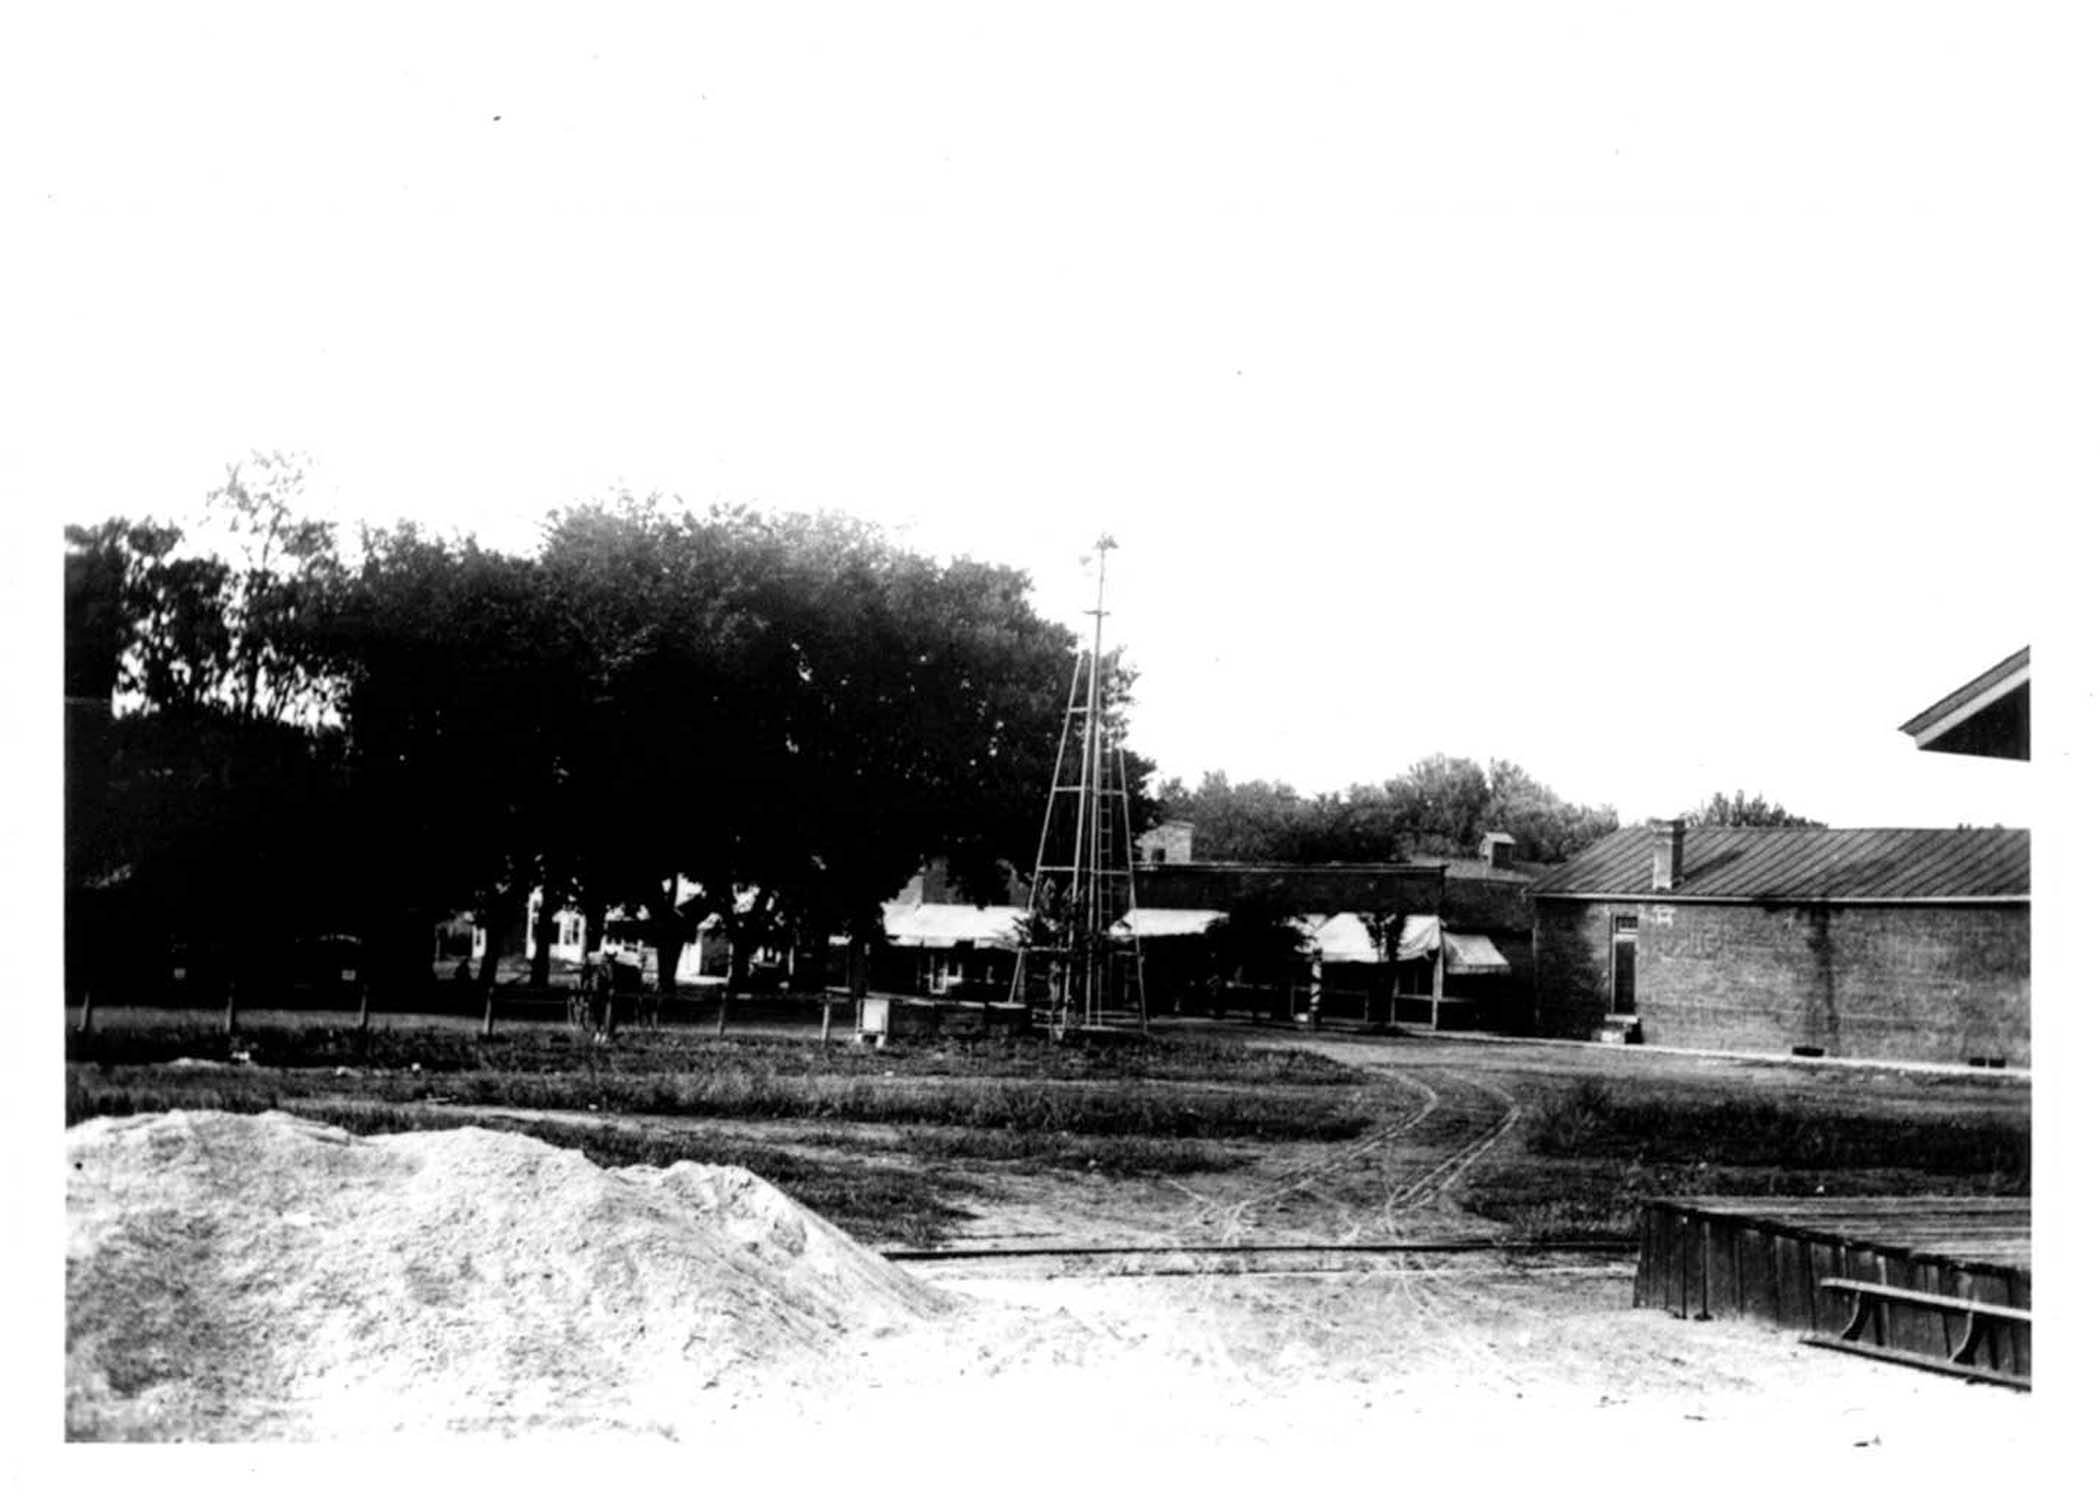 This old picture shows the original well